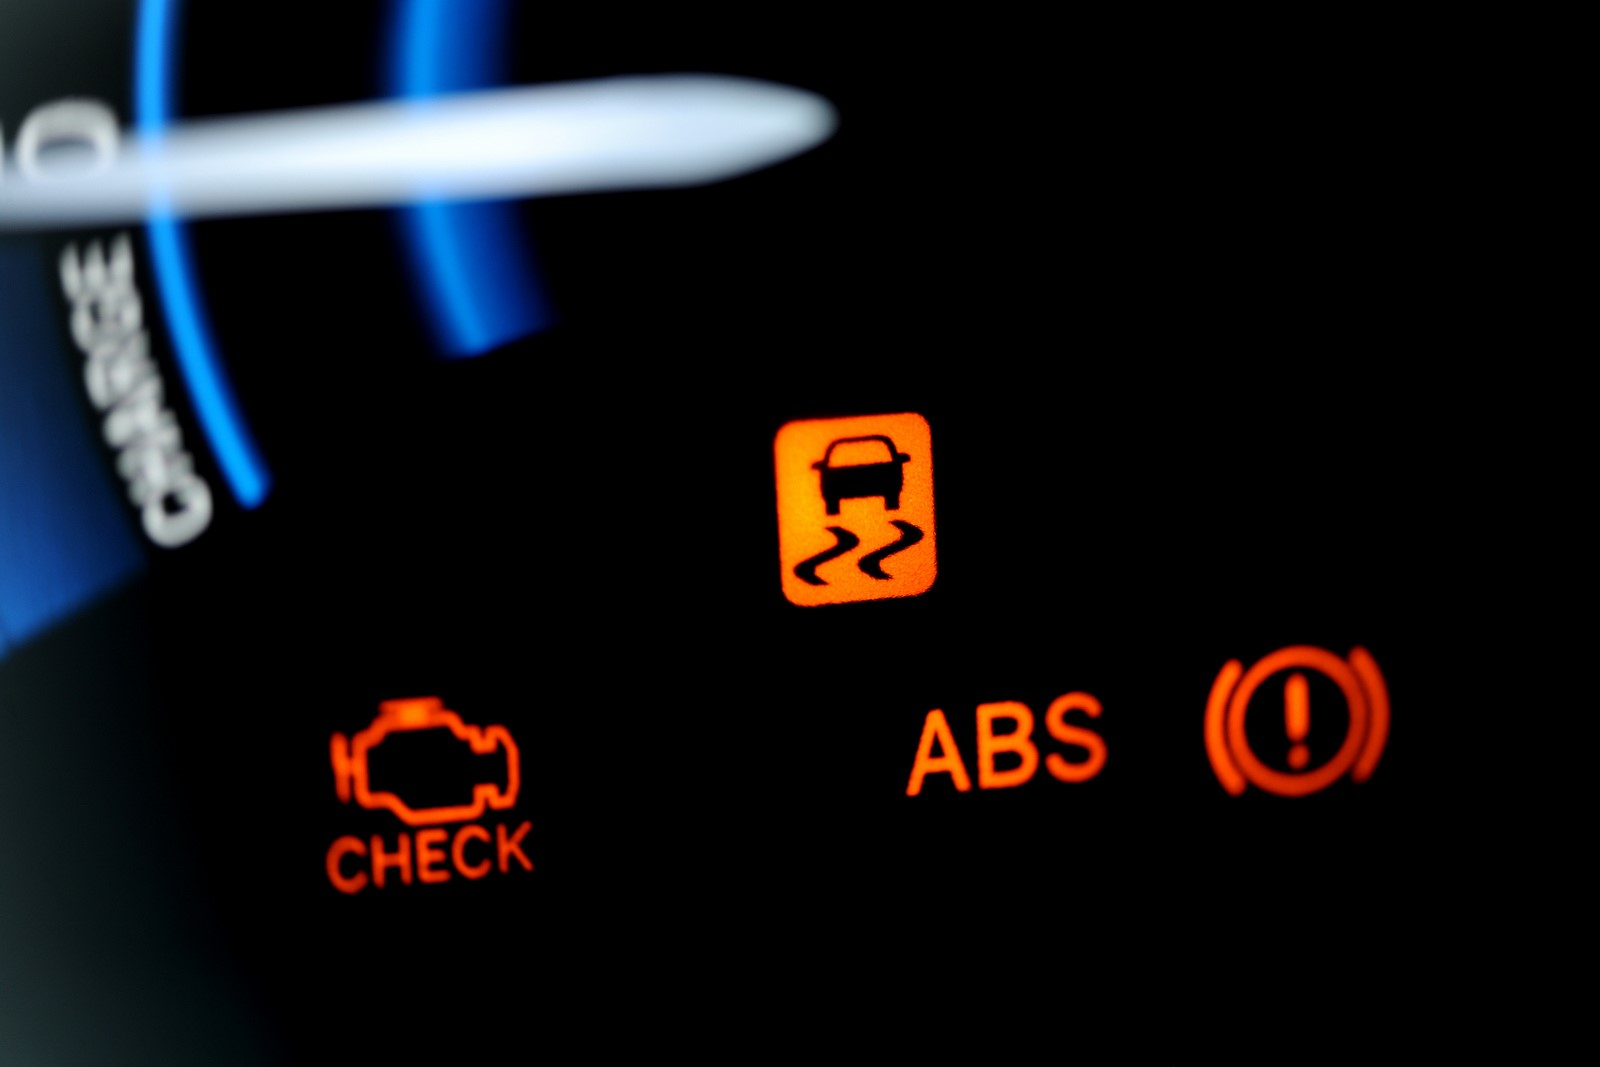 the complete guide to ford dashboard warning lights mainland ford rh mainlandford com Ford Explorer Warning Light Symbols Ford F-150 Warning Light Symbols